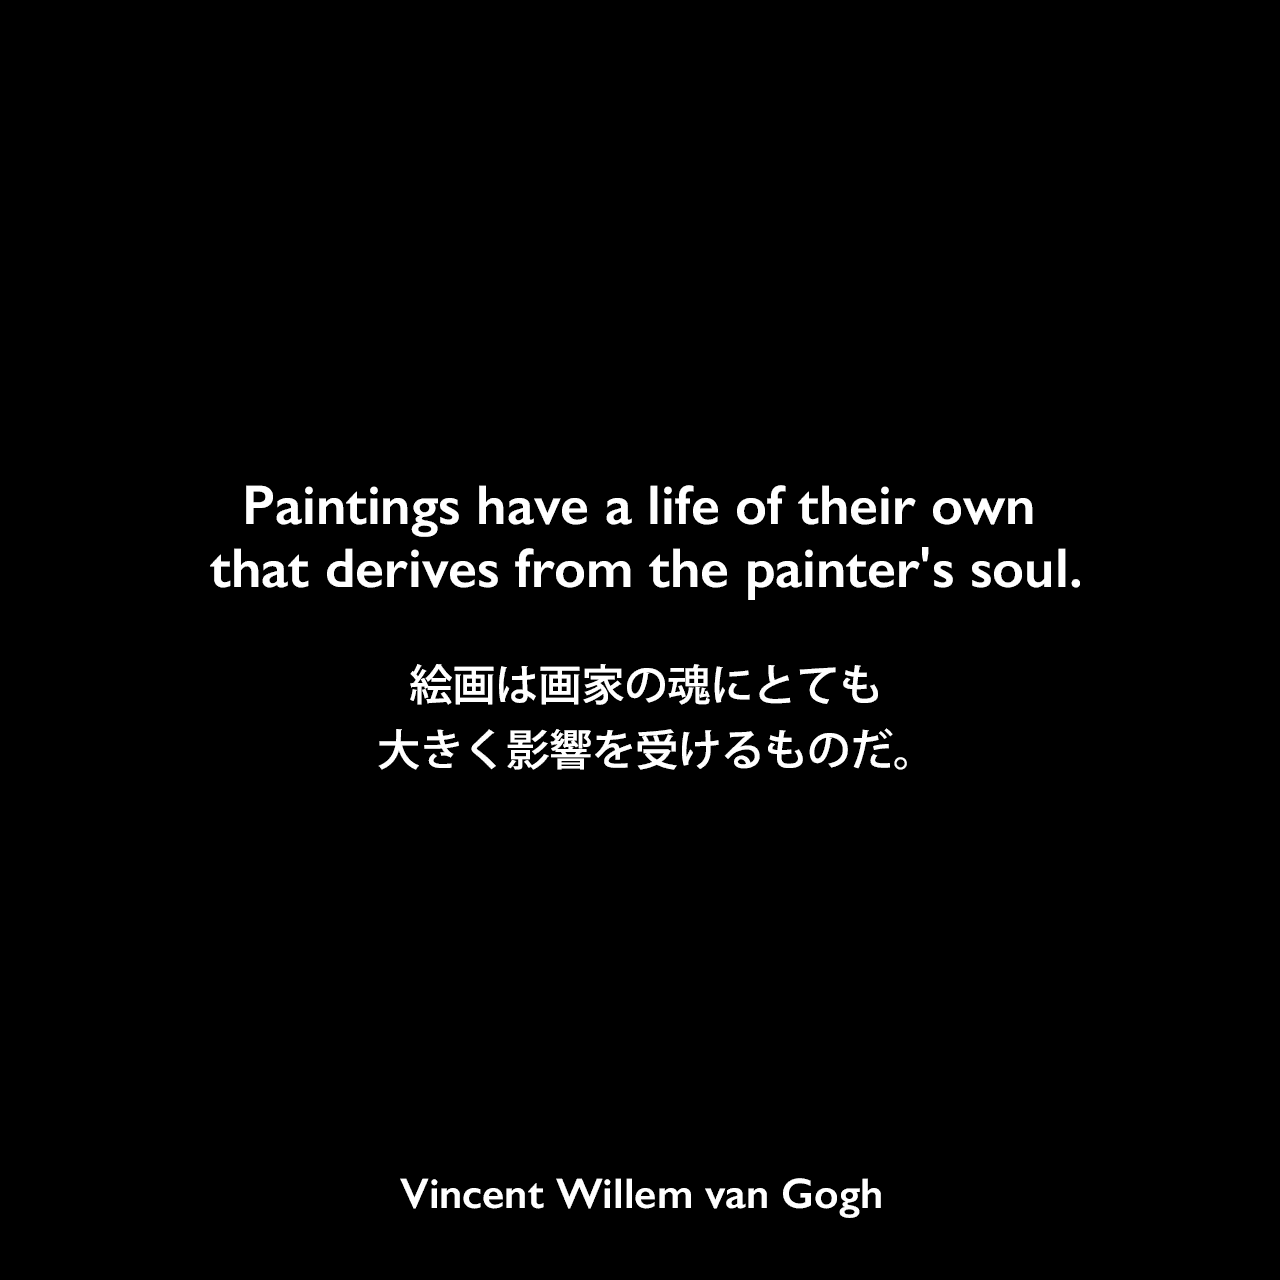 Paintings have a life of their own that derives from the painter's soul.絵画は画家の魂にとても大きく影響を受けるものだ。Vincent Willem van Gogh